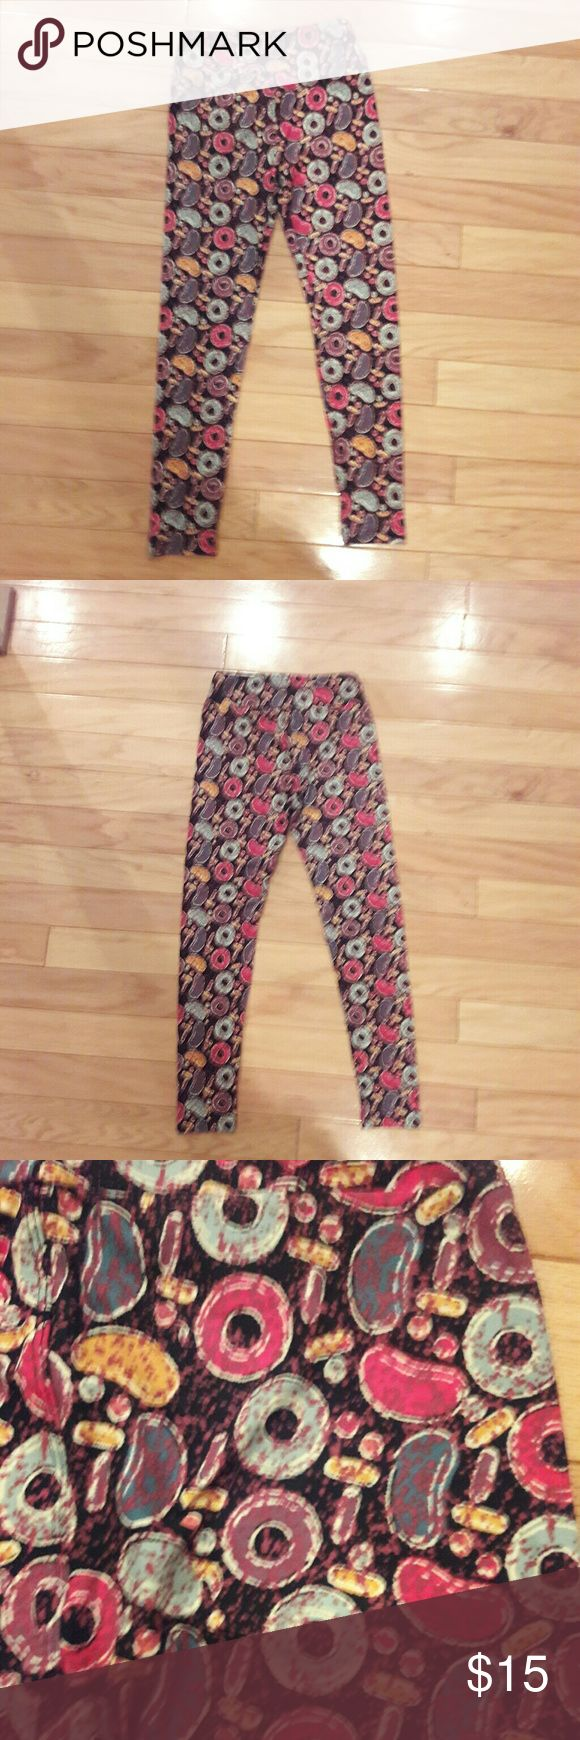 NWOT LuLaRoe Candy Leggings OS These  lularoe leggings with a candy crush pattern is the perfect lounging around or casual wear. Vibrant colors and brand new never been worn it is an excellent addition to any Lula-closet. Many consider this one of their unicorns! It is an OS . Make me an offer! LuLaRoe Pants Leggings